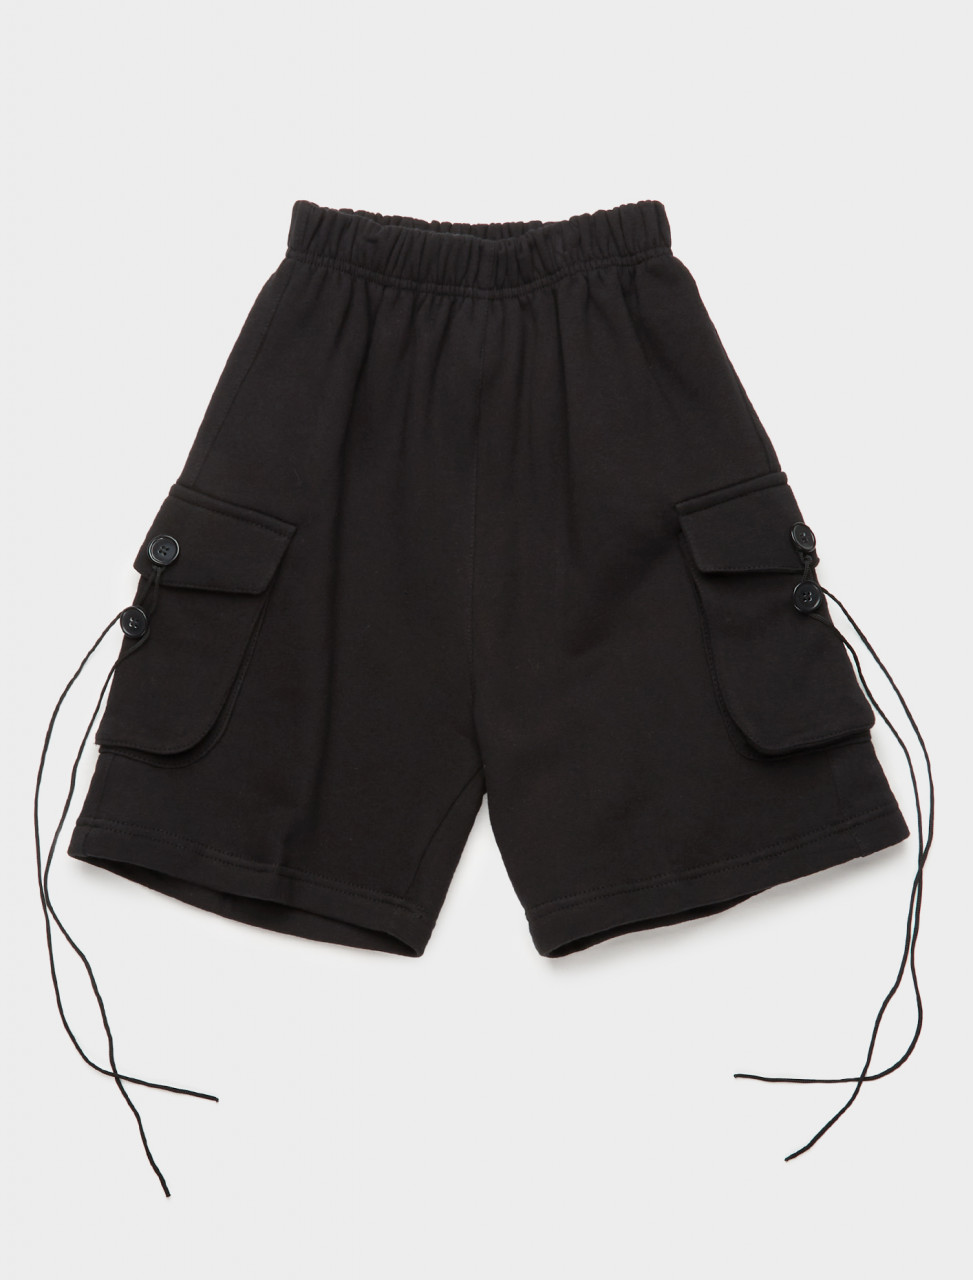 328-YOU01P001-3 YOUTHS IN BALACLAVA SHORTS IN BLACK